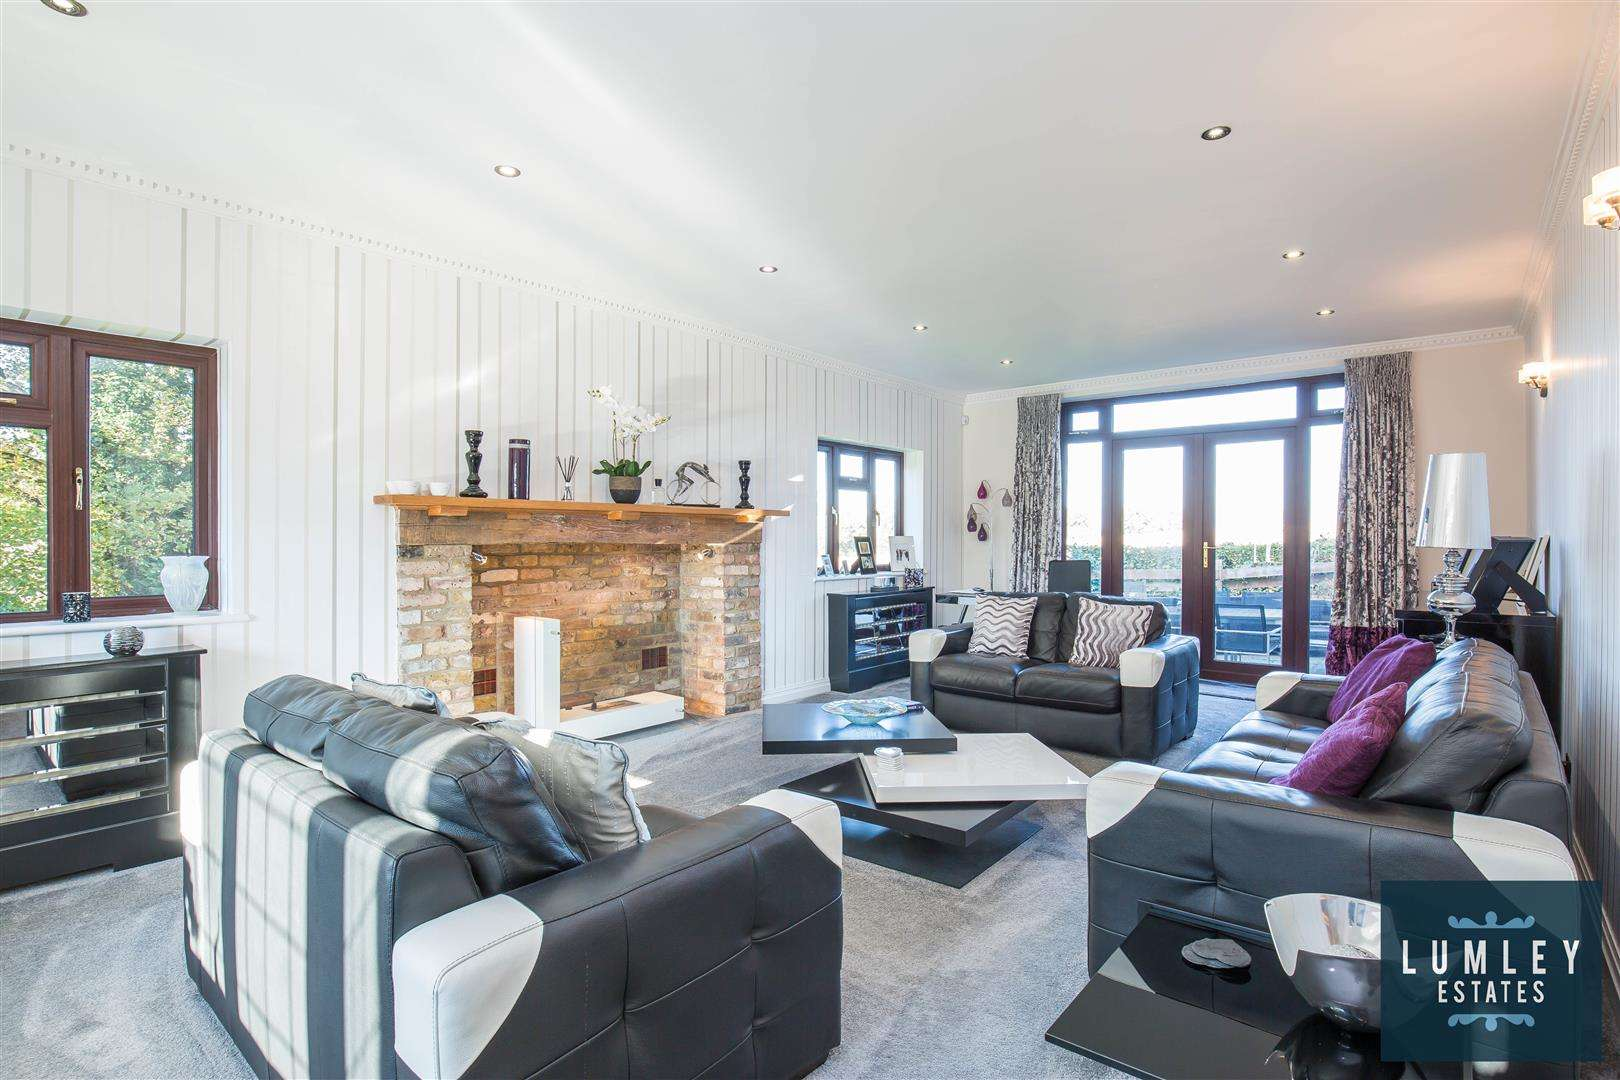 6 bed to rent - (Property Image 1)